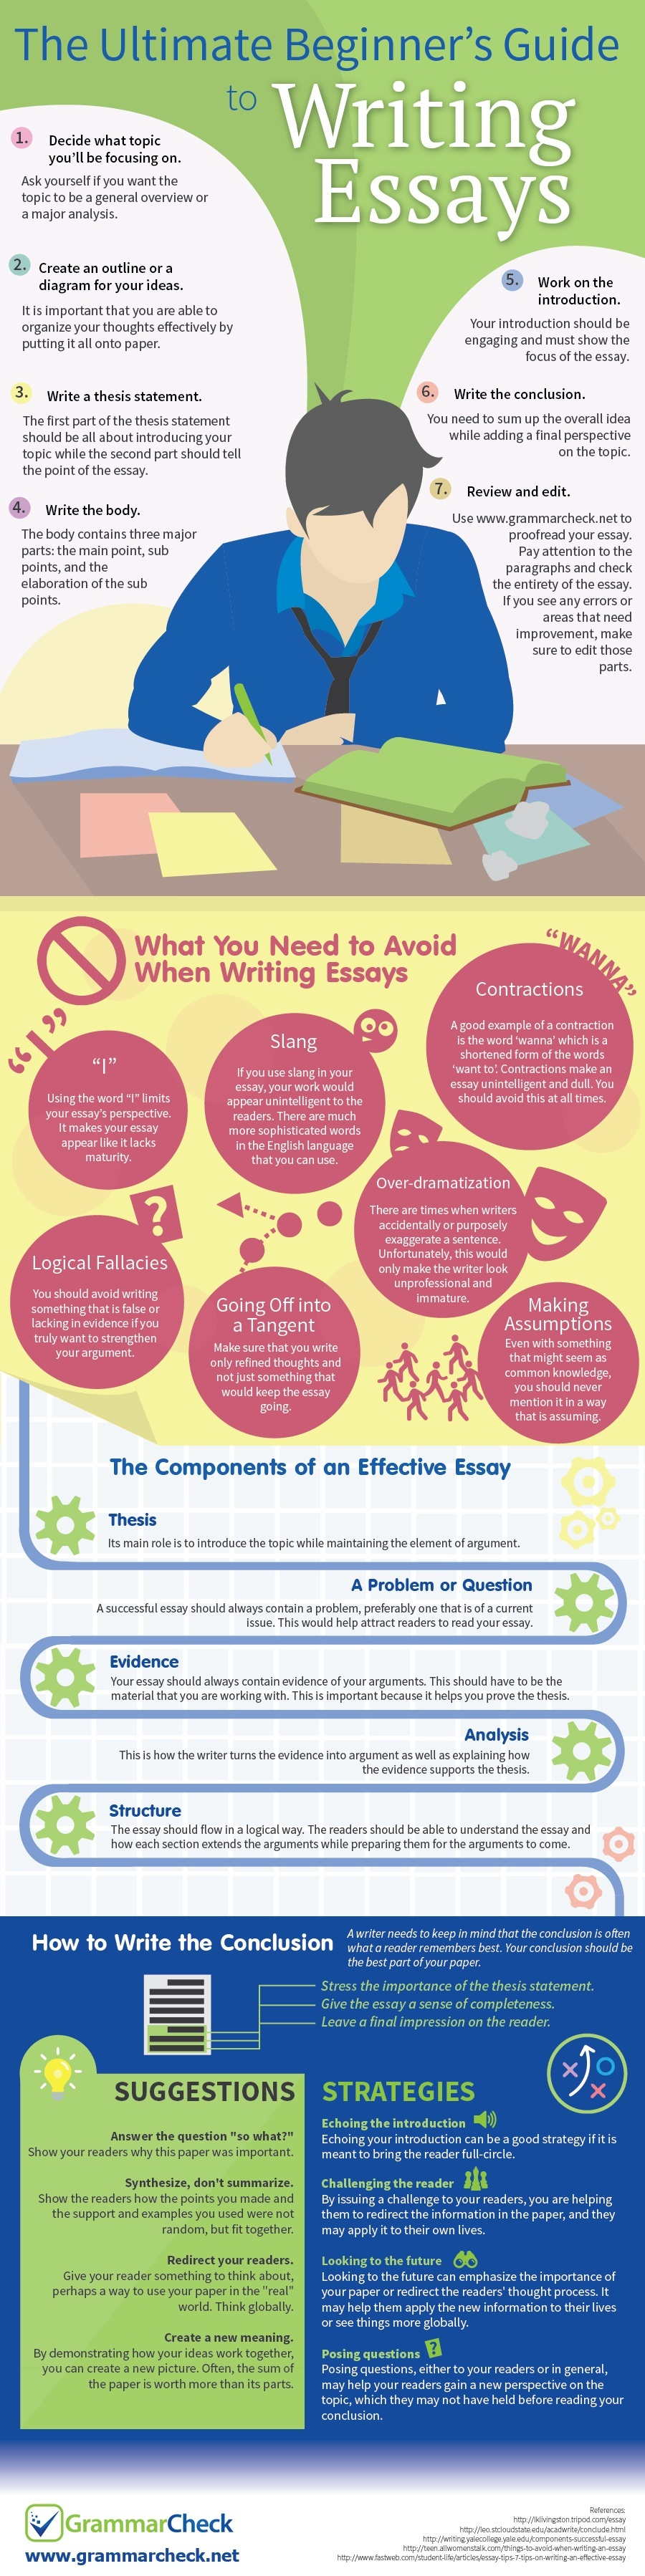 The Ultimate Beginners Guide To Writing Essays Infographic  Essay For High School Application also Thesis Statements For Essays  Sample Of English Essay